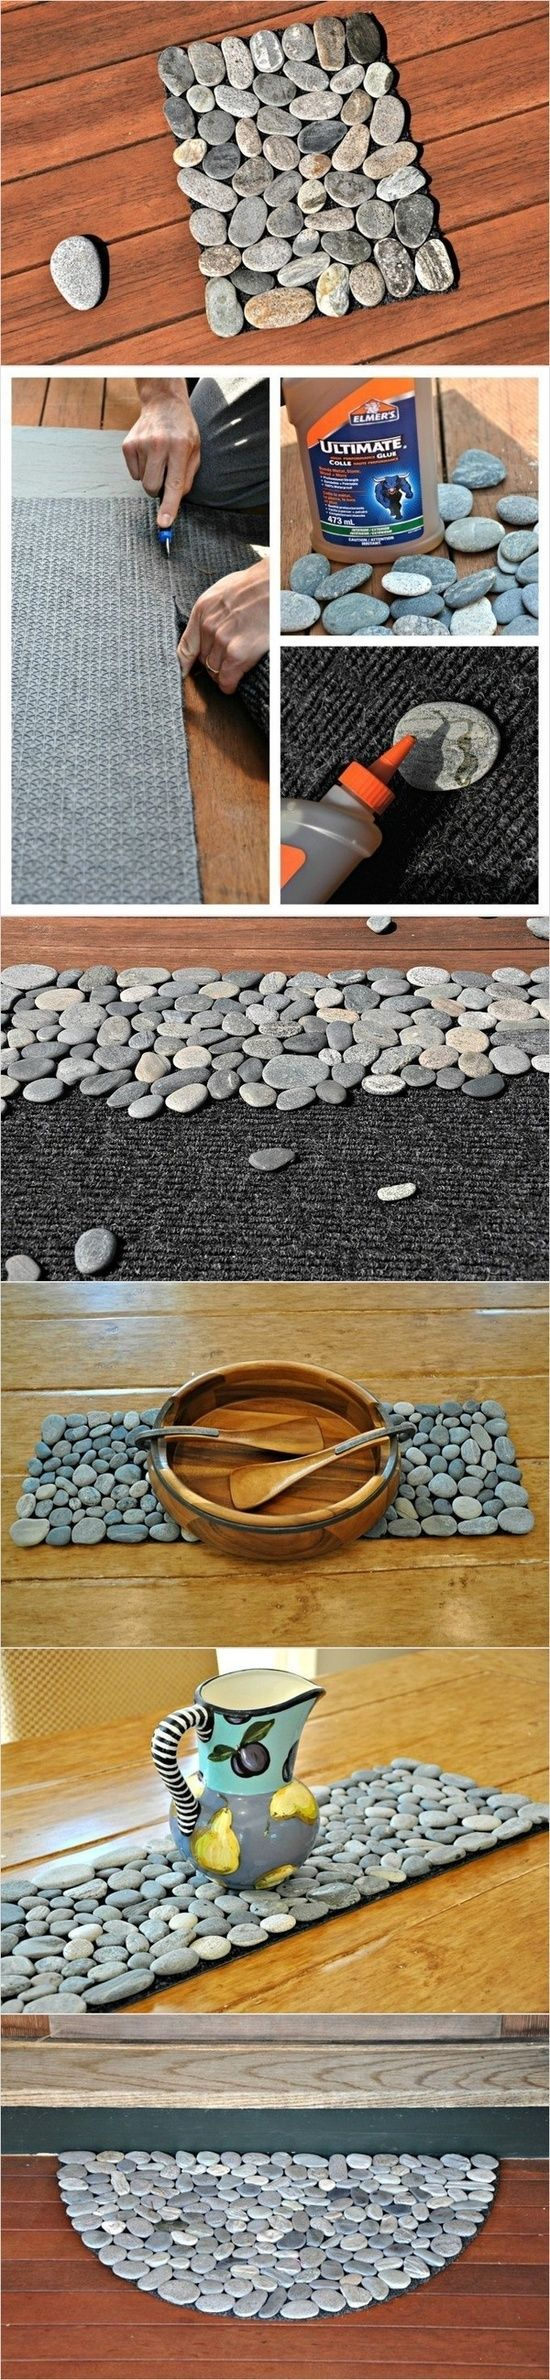 DIY pebble mat or coster @ Do It Yourself Pins